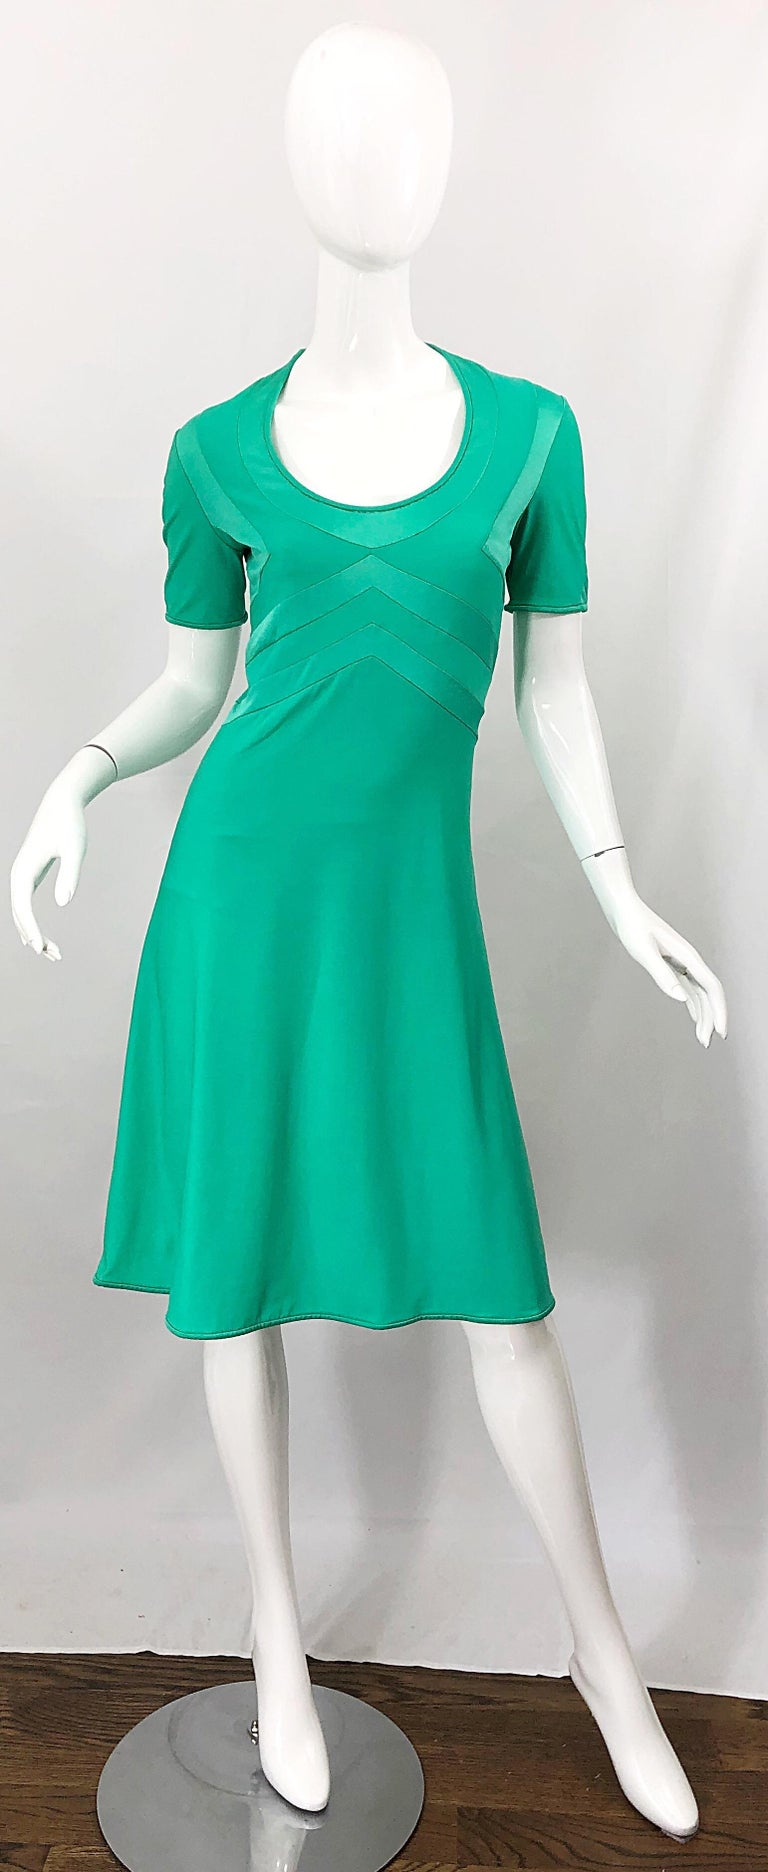 Chic mid 70s GIORGIO DI SANT ANGELO kelly green slinky short sleeve jersey bodysuit dress! Features flattering stitches on the bodice. Attactched bodysuit makes this rare gem perfect for the dance floor. Simply slips over the head and stretches to